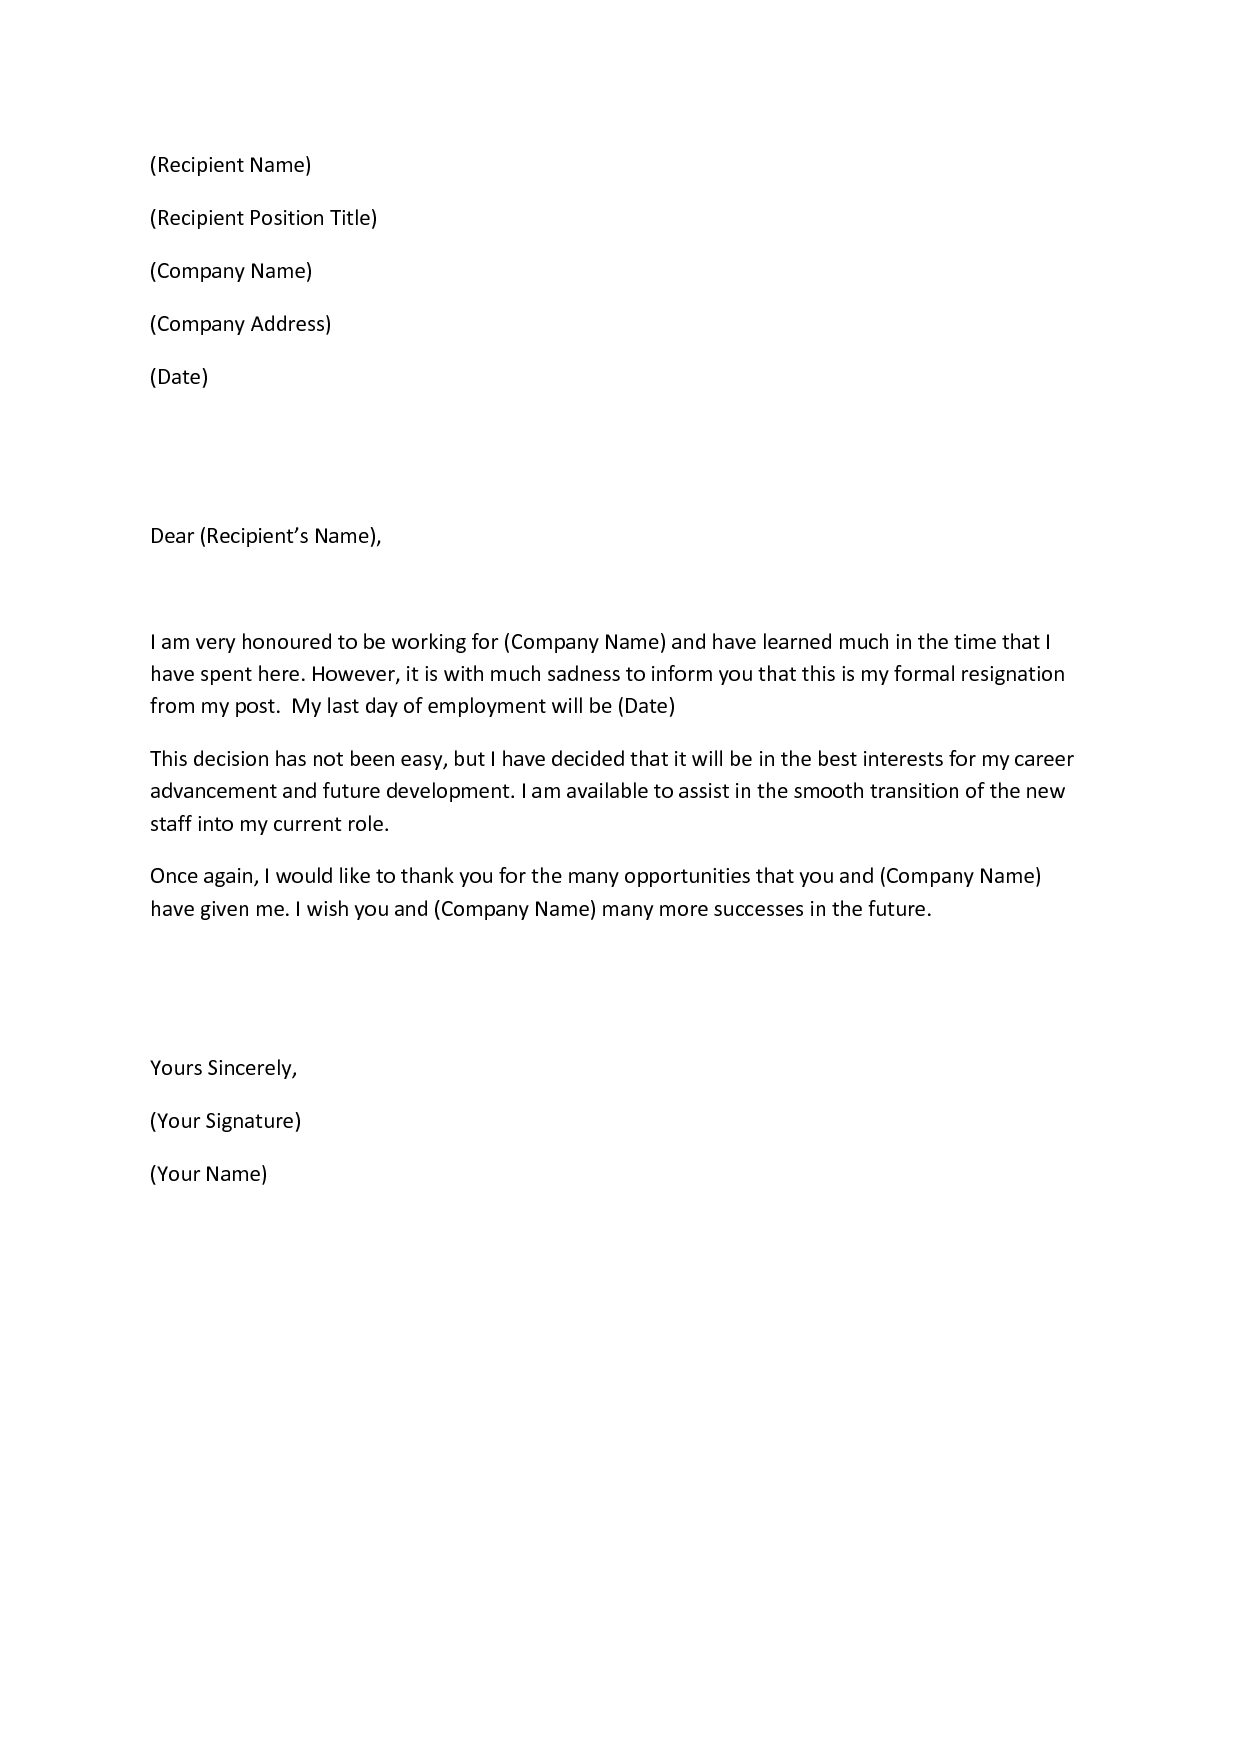 High Quality Sample Letter Resignation Get Doc Rkvb Template Kevinkan Resignation Letter  Template Sample Employee Sample Careers Here Resignation Letter Quitting  Job ...  Example Letter Of Resignation